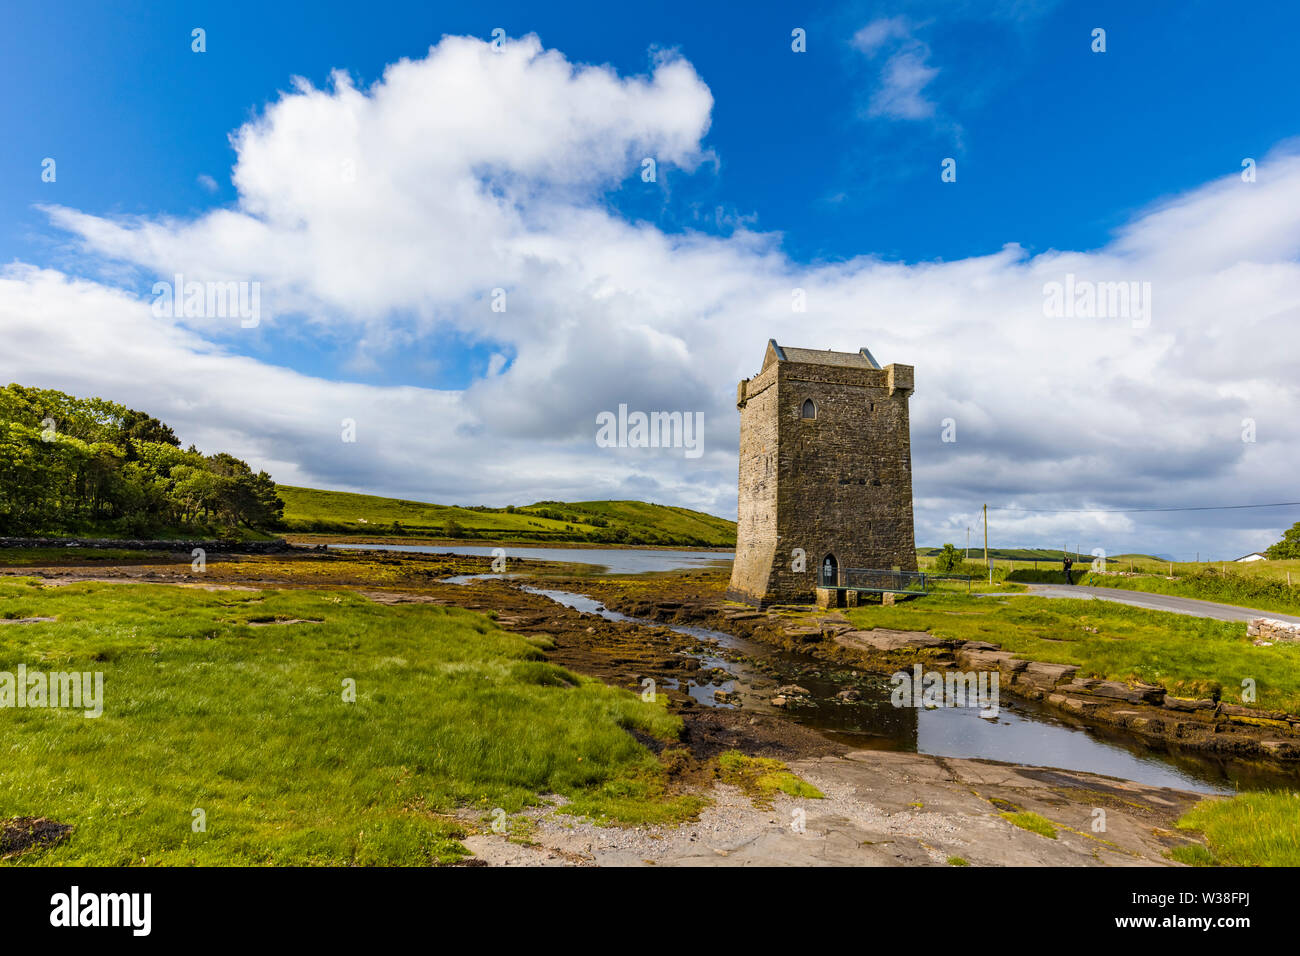 Rockfleet Castle, or Carrickahowley Castle a tower house of Grace O'Malley the pirate queen near Newport in County Mayo, Ireland - Stock Image